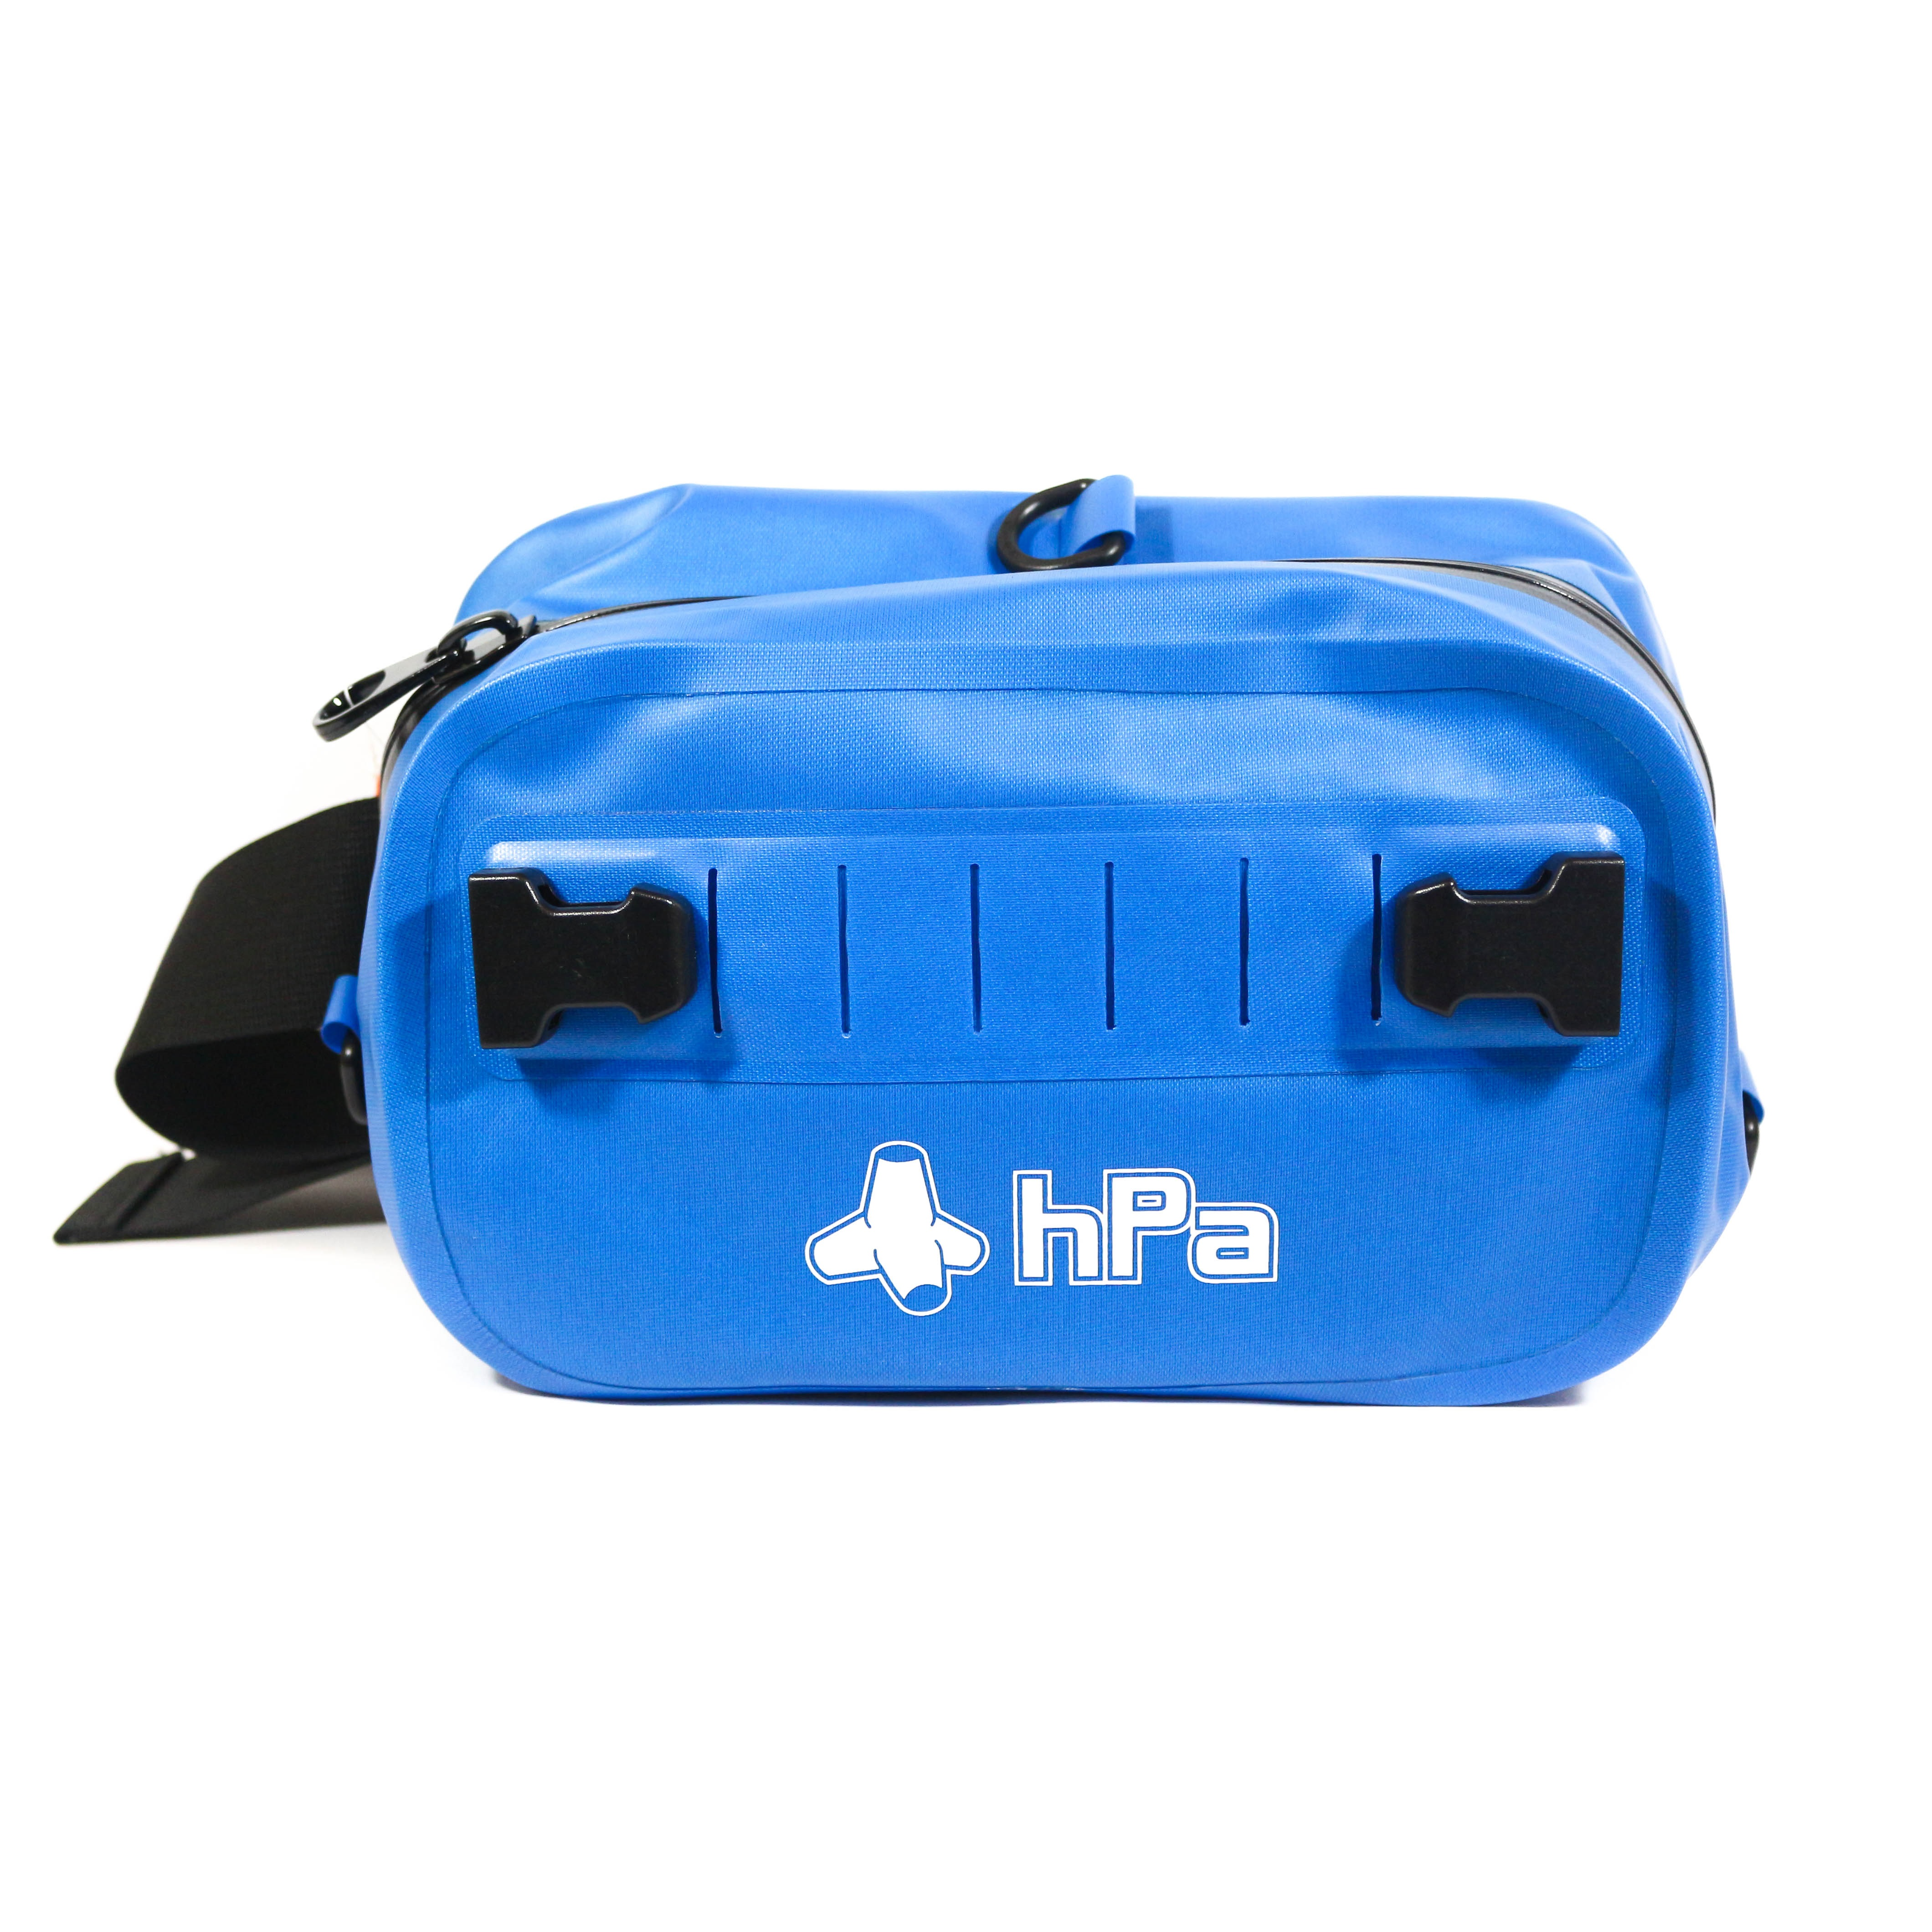 HPA Infladry 6 Waistpack 27 x 18 x 10cm 6 litres Blue (0078)